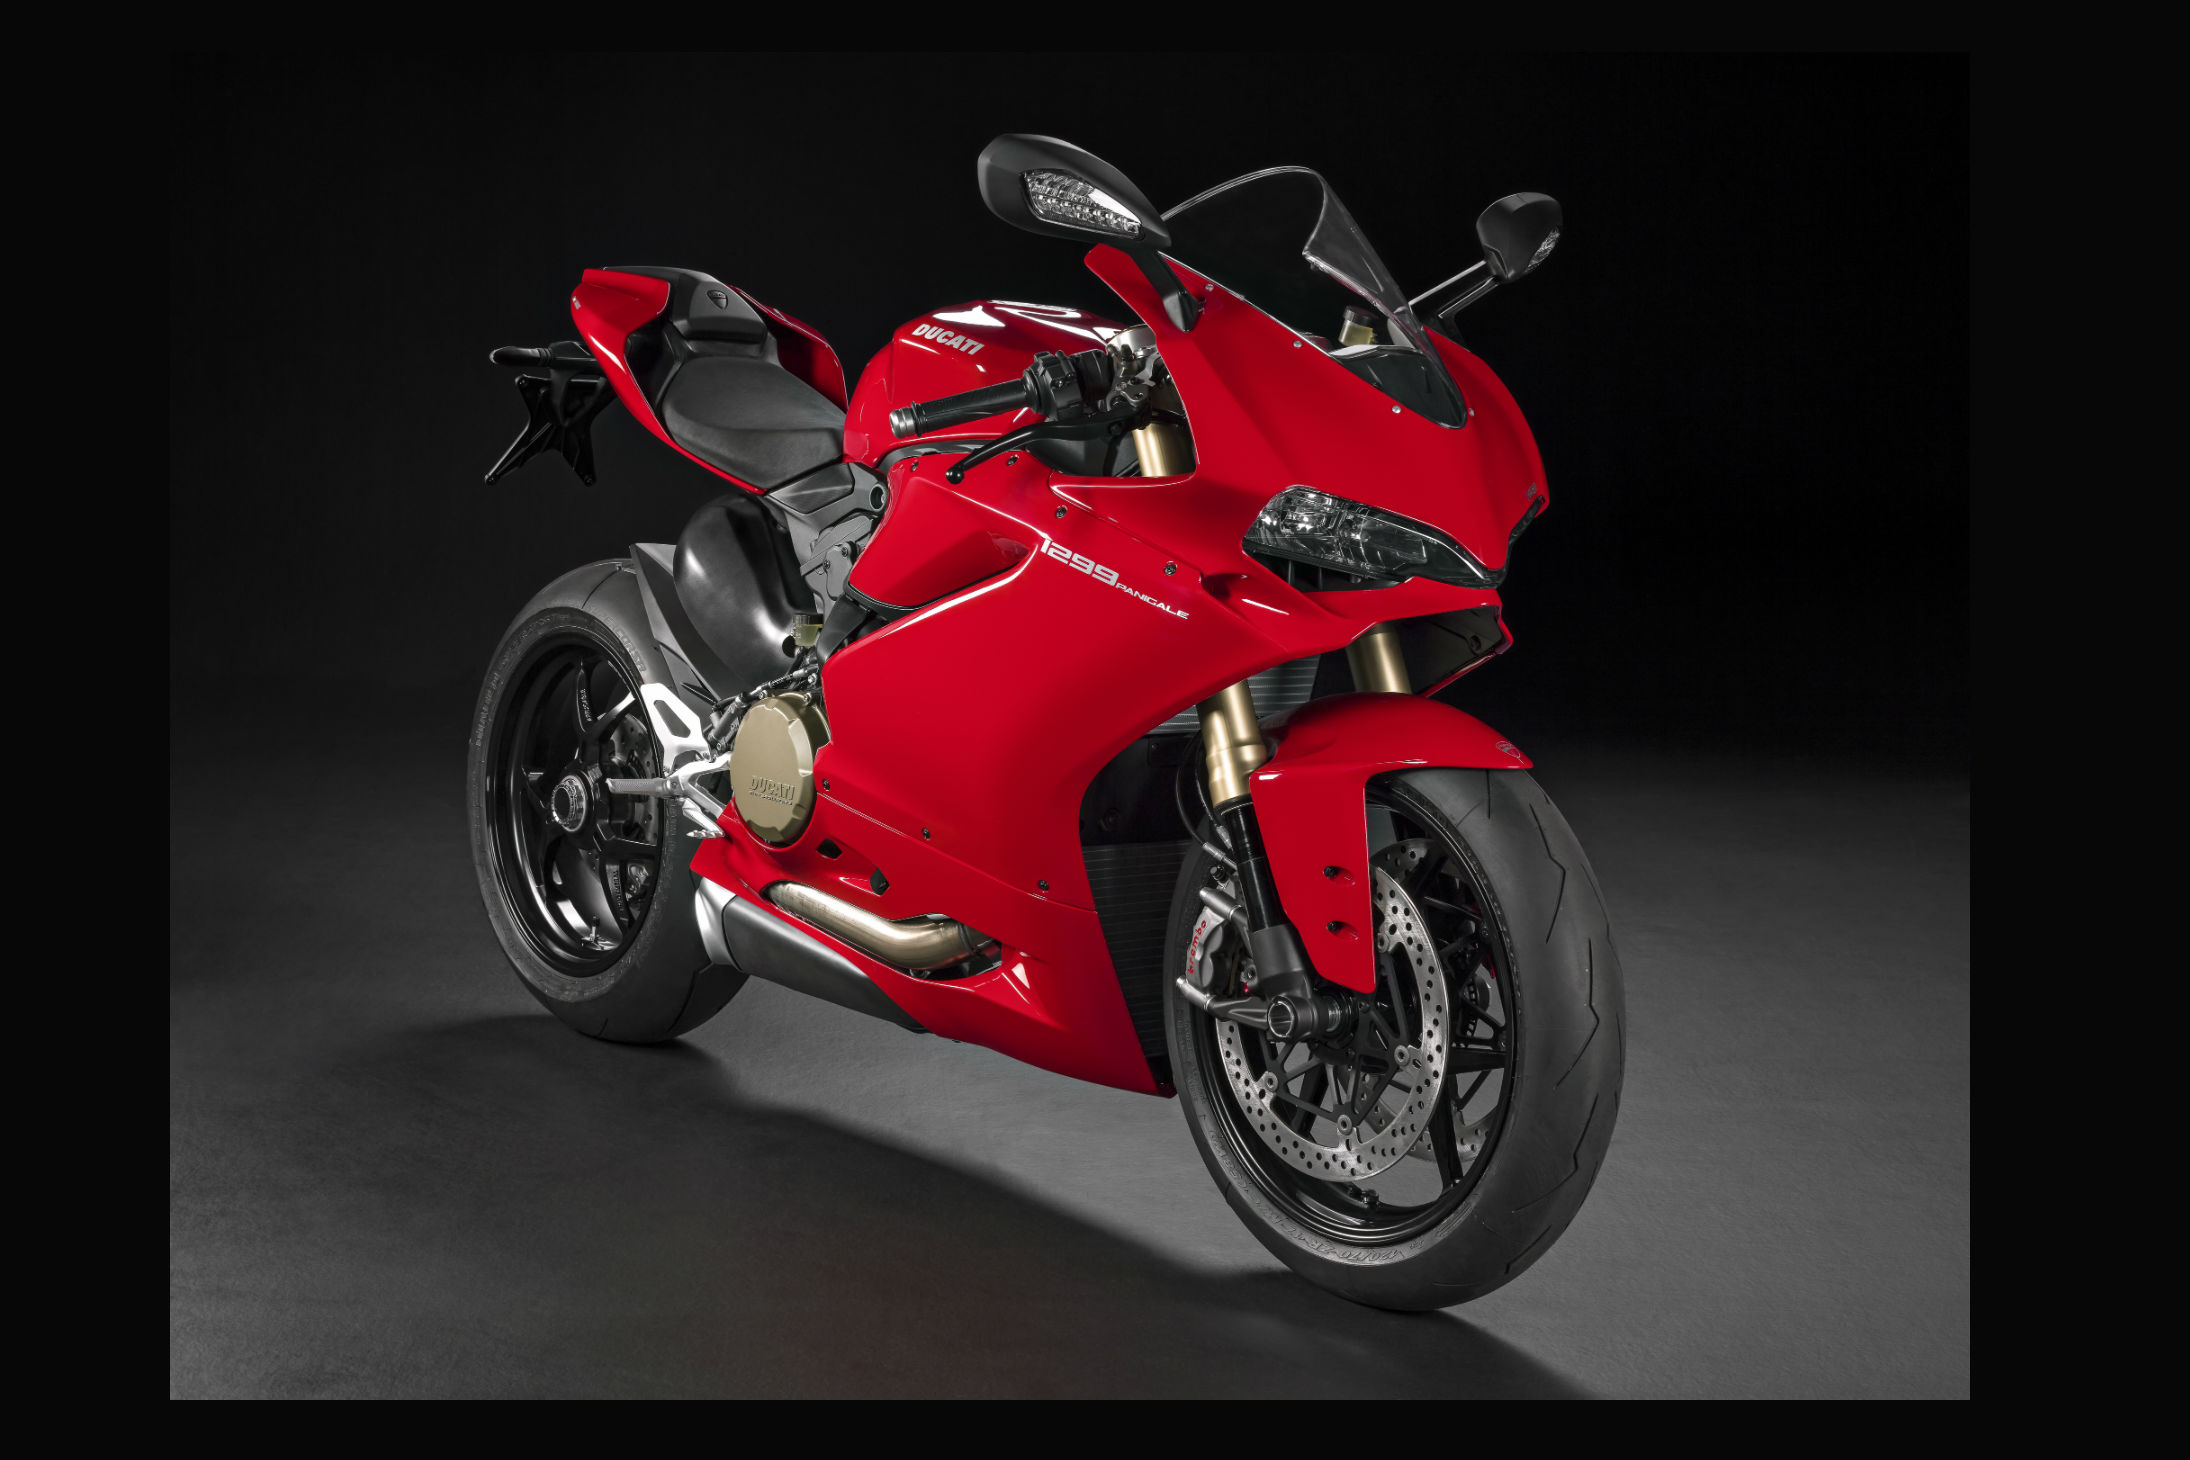 2015 ducati prices confirmed | visordown